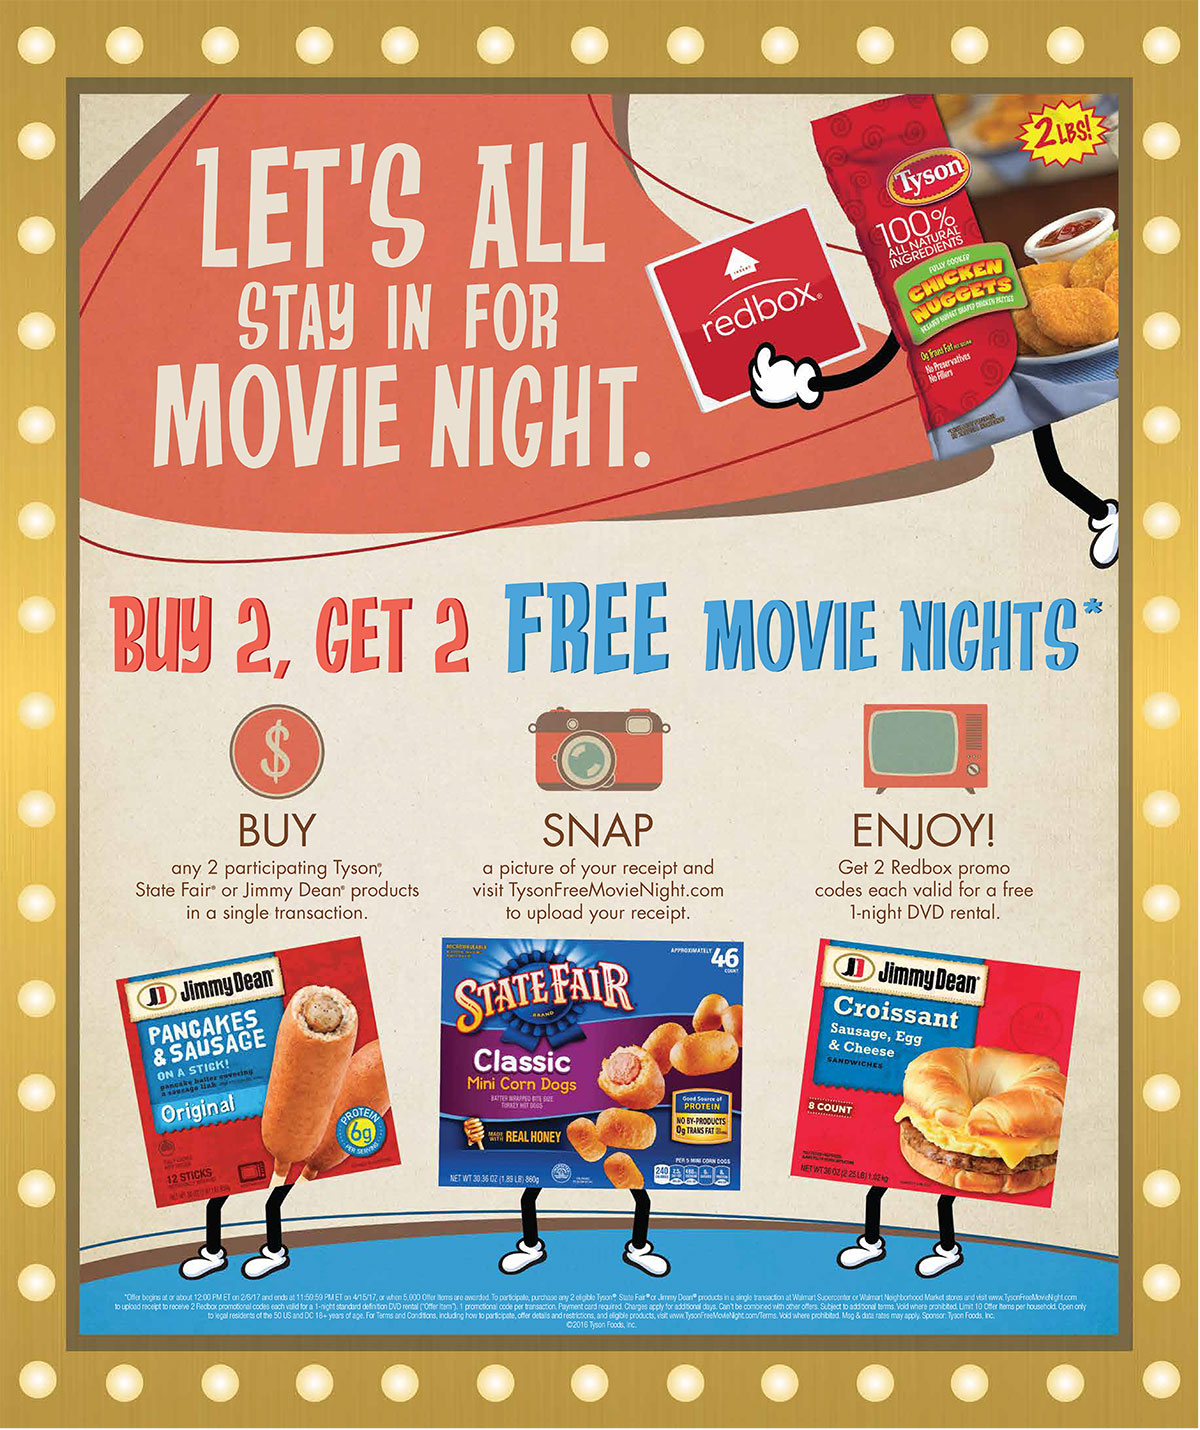 Free Movie Night with Tyson and Redbox at Walmart